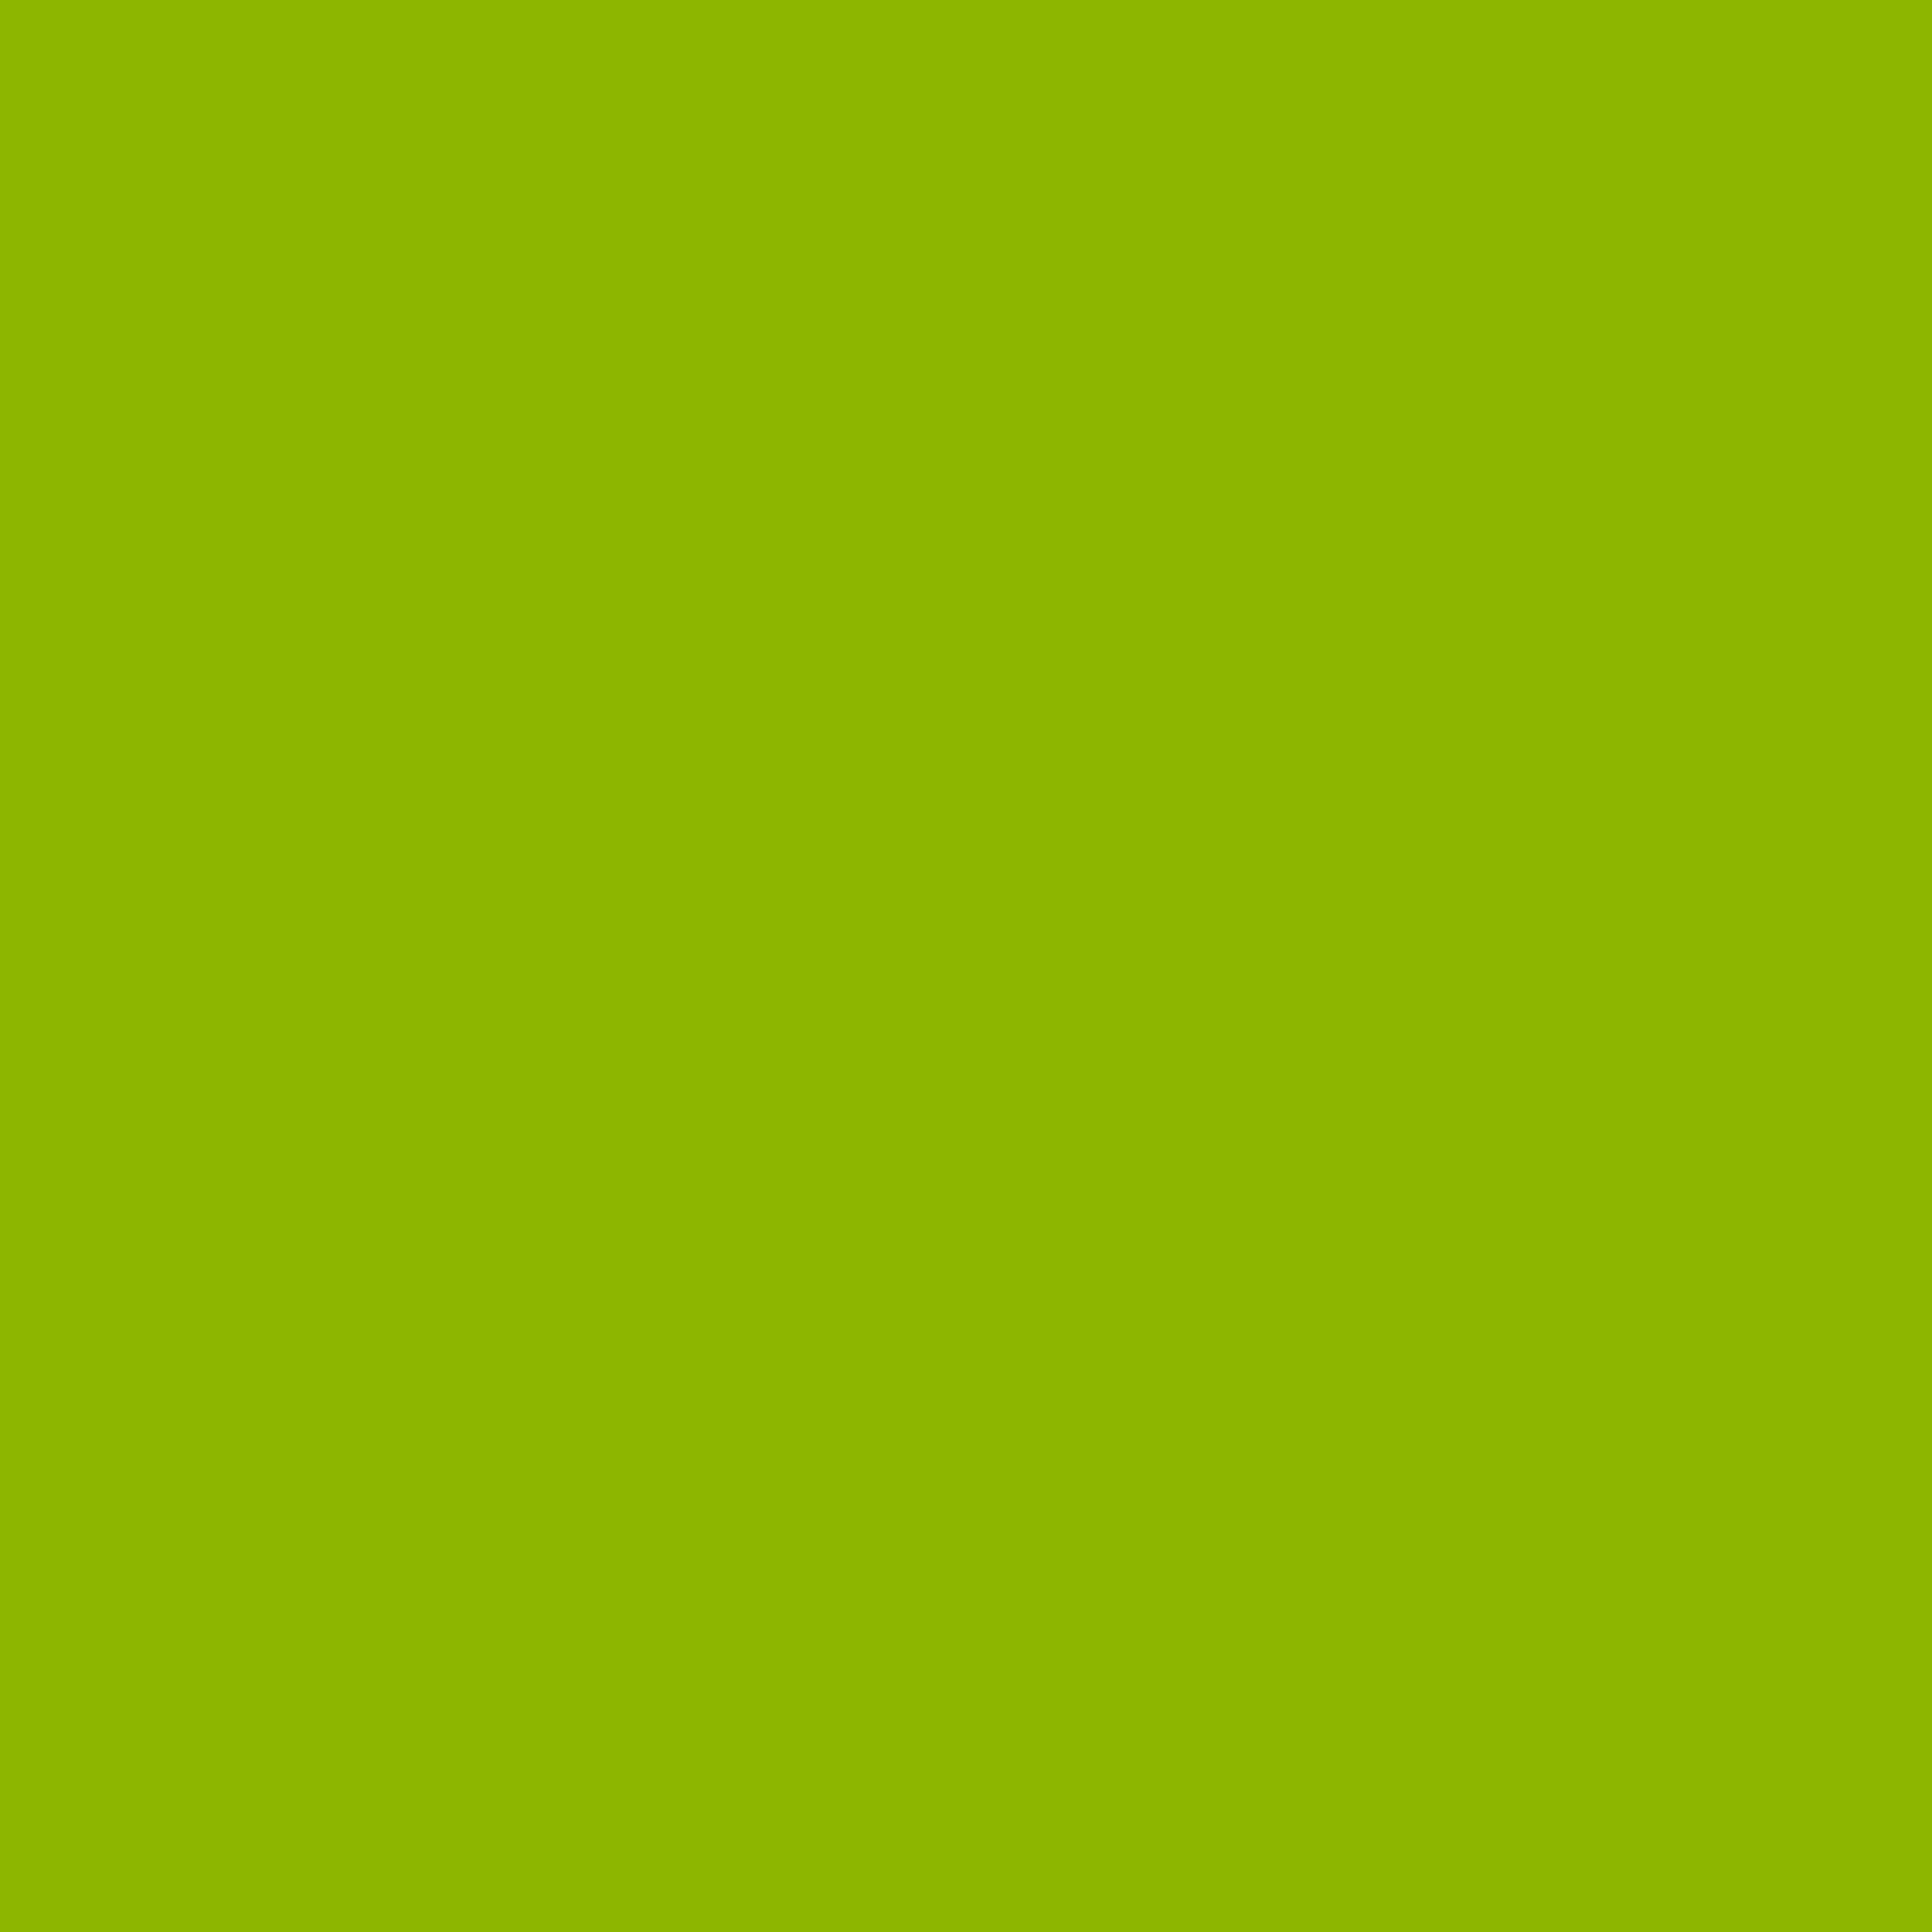 2048x2048 Apple Green Solid Color Background